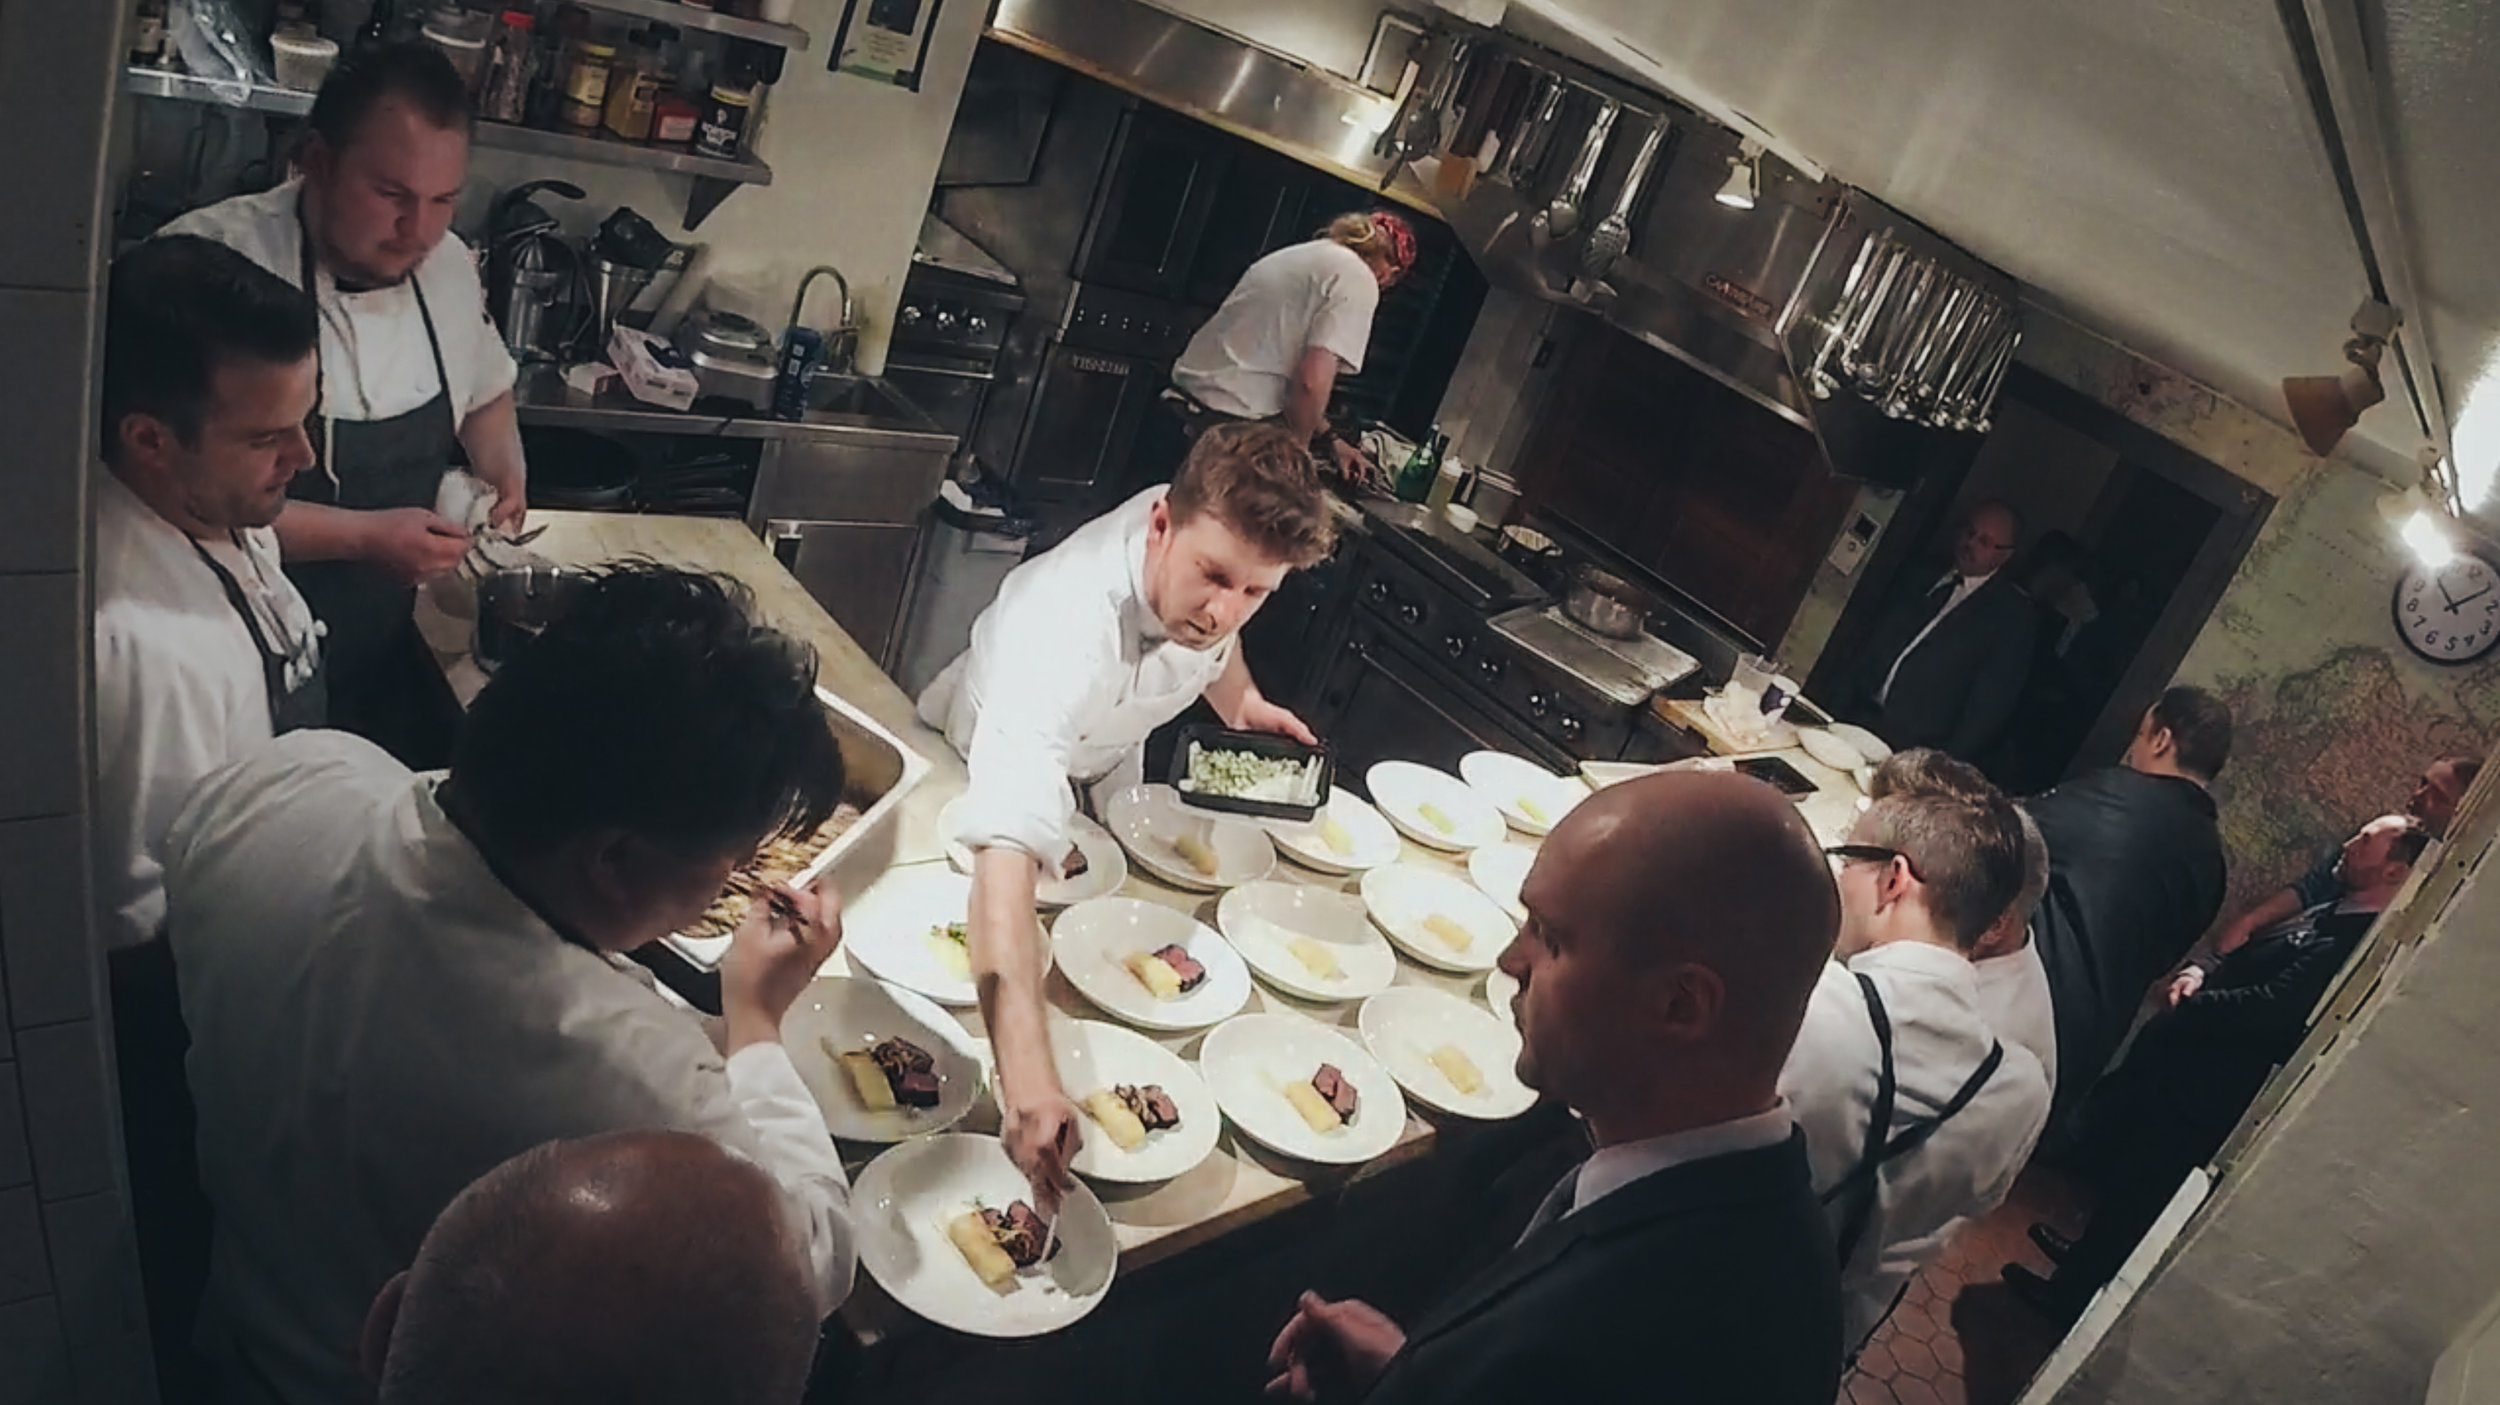 Plating at the James Beard House with 2-Michelin Star Chef Ryan McCaskey of Acadia and his team.Getting 75+ plates out at the same time is a test of efficiency.